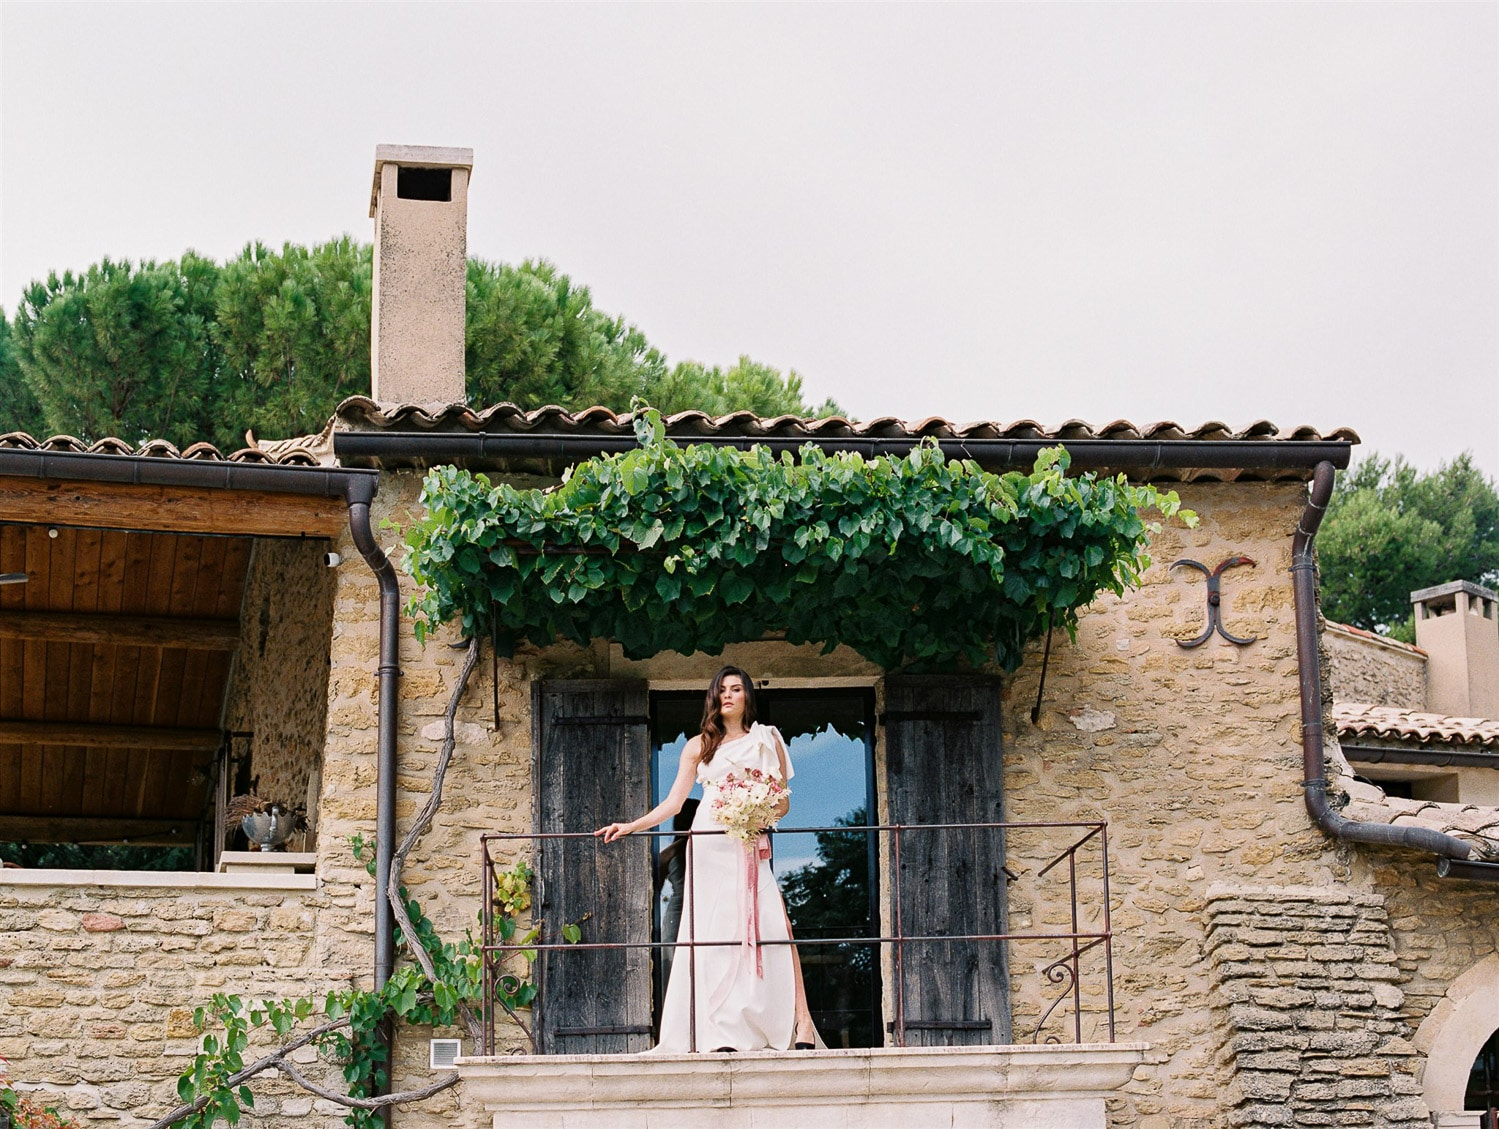 refined wedding in domaine les roullets